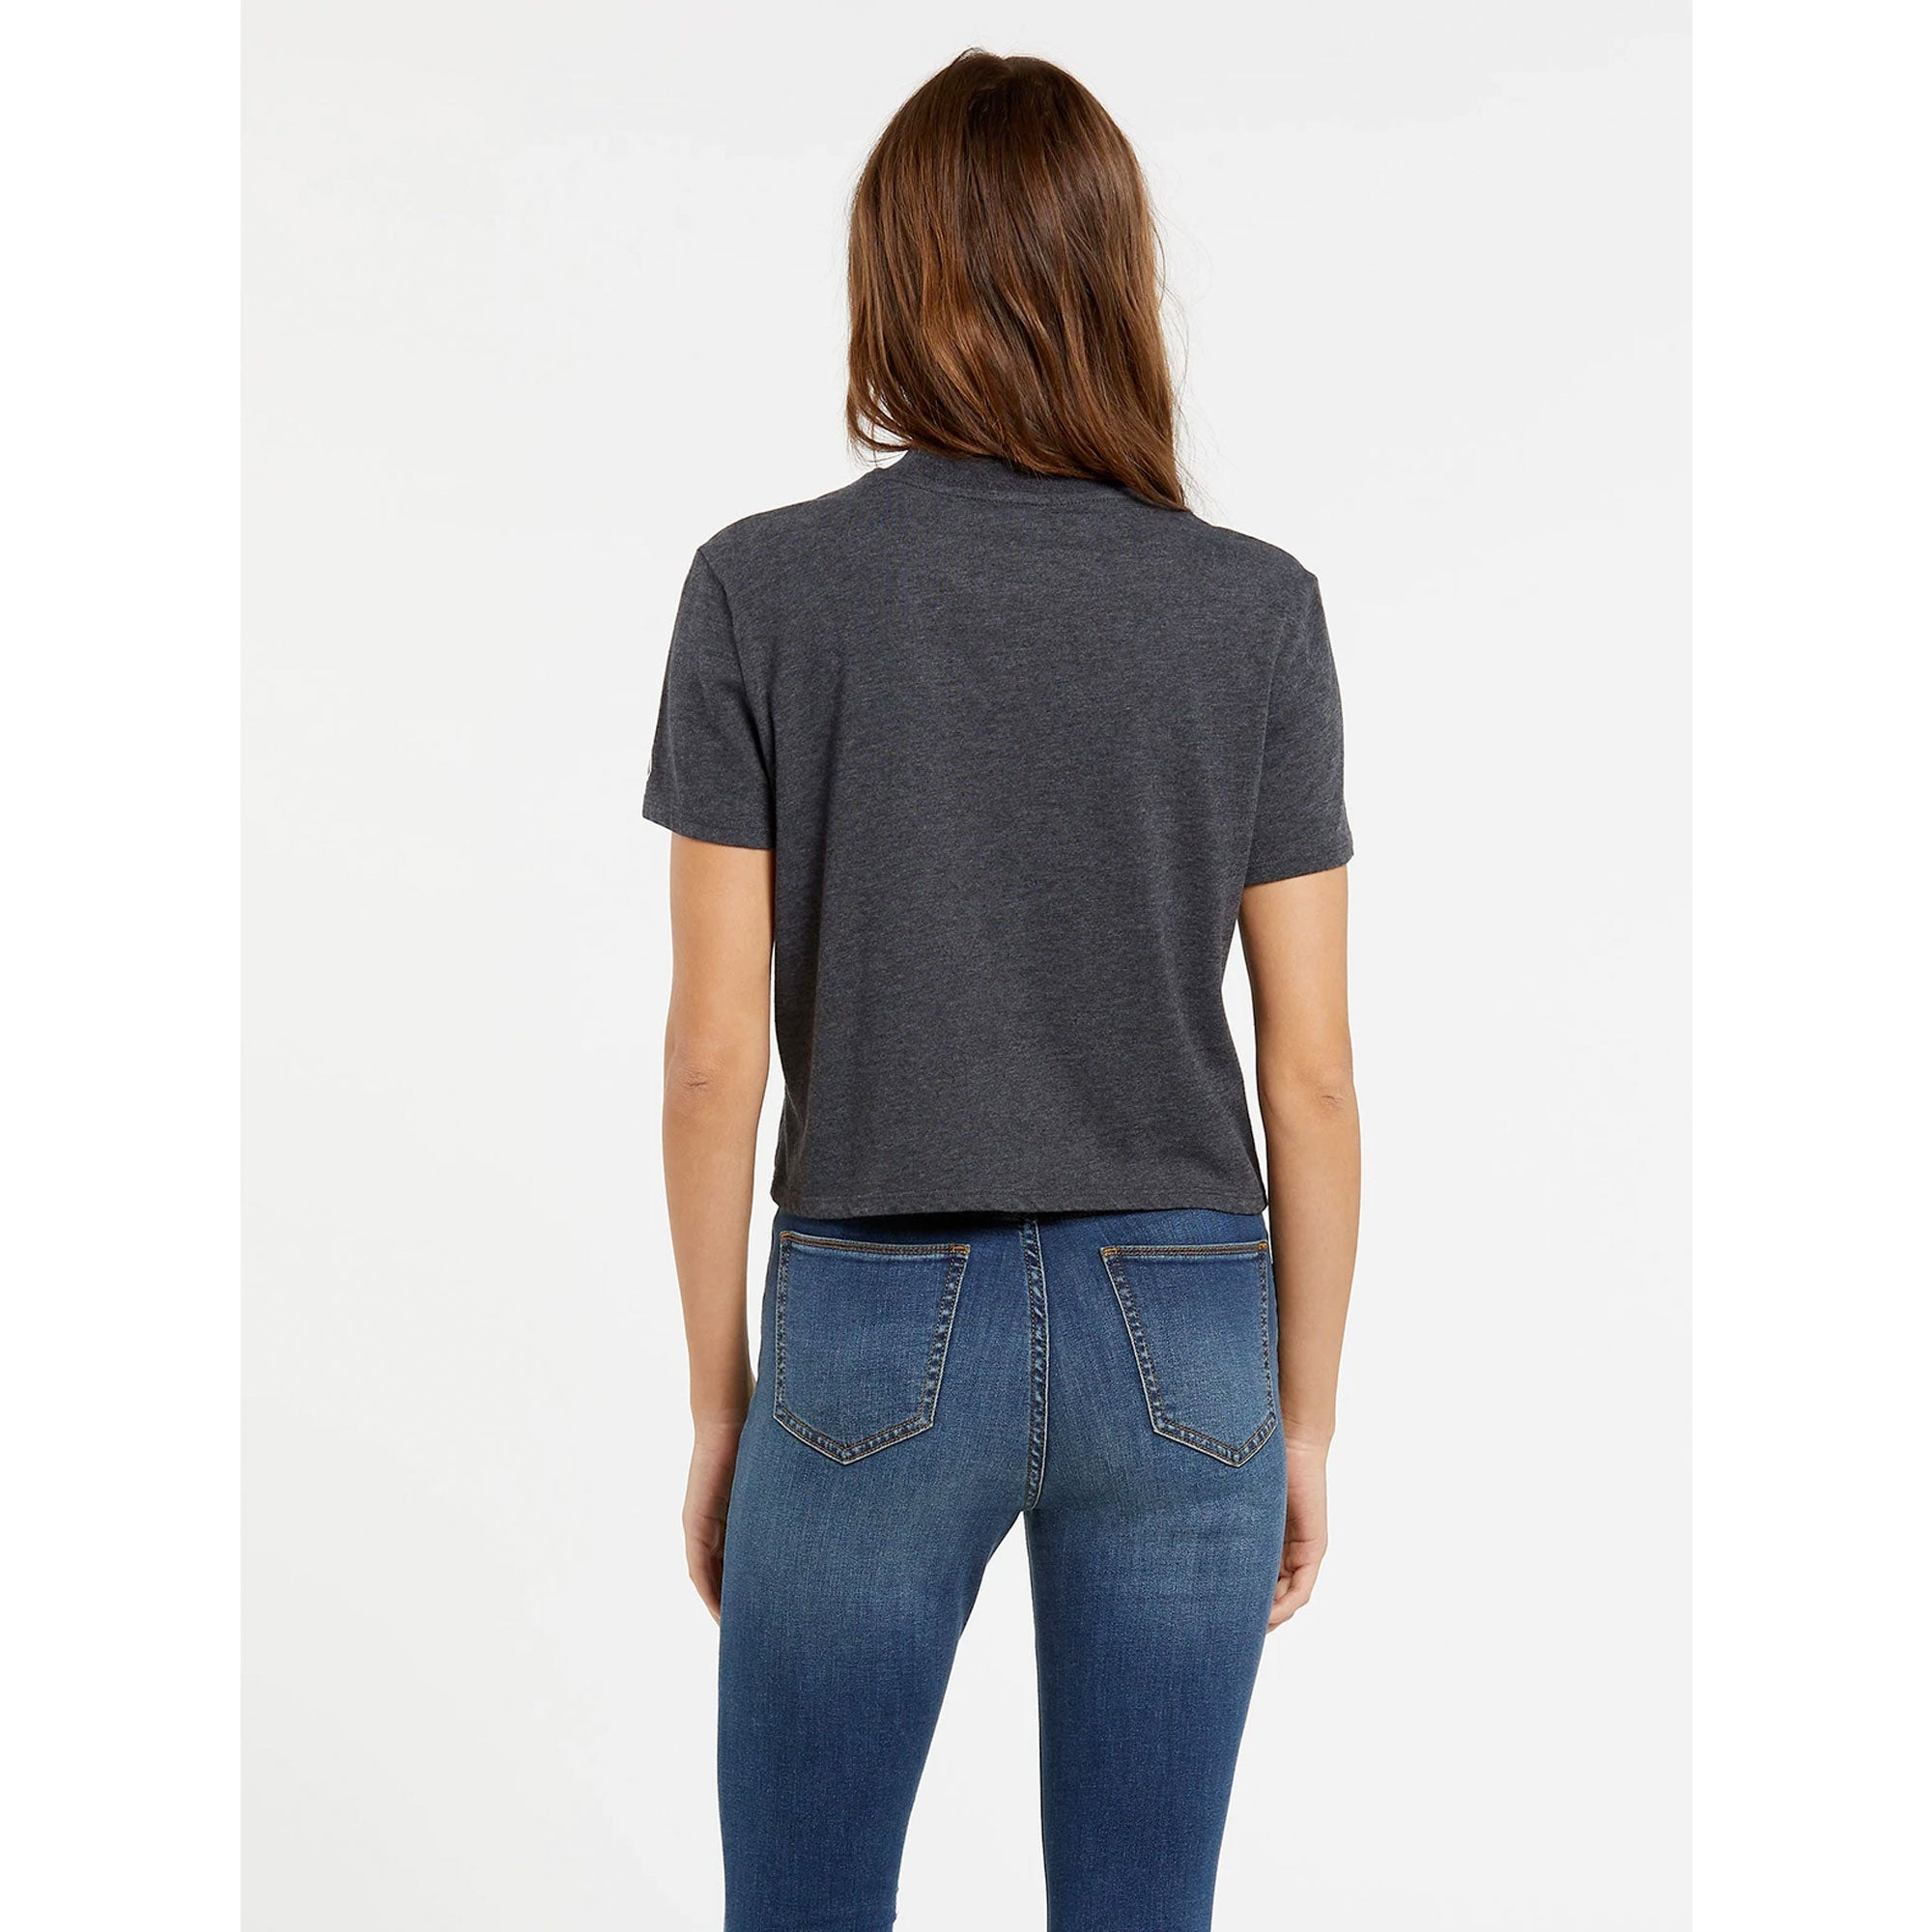 Volcom's Pocket Stone Women's S/S T-Shirt